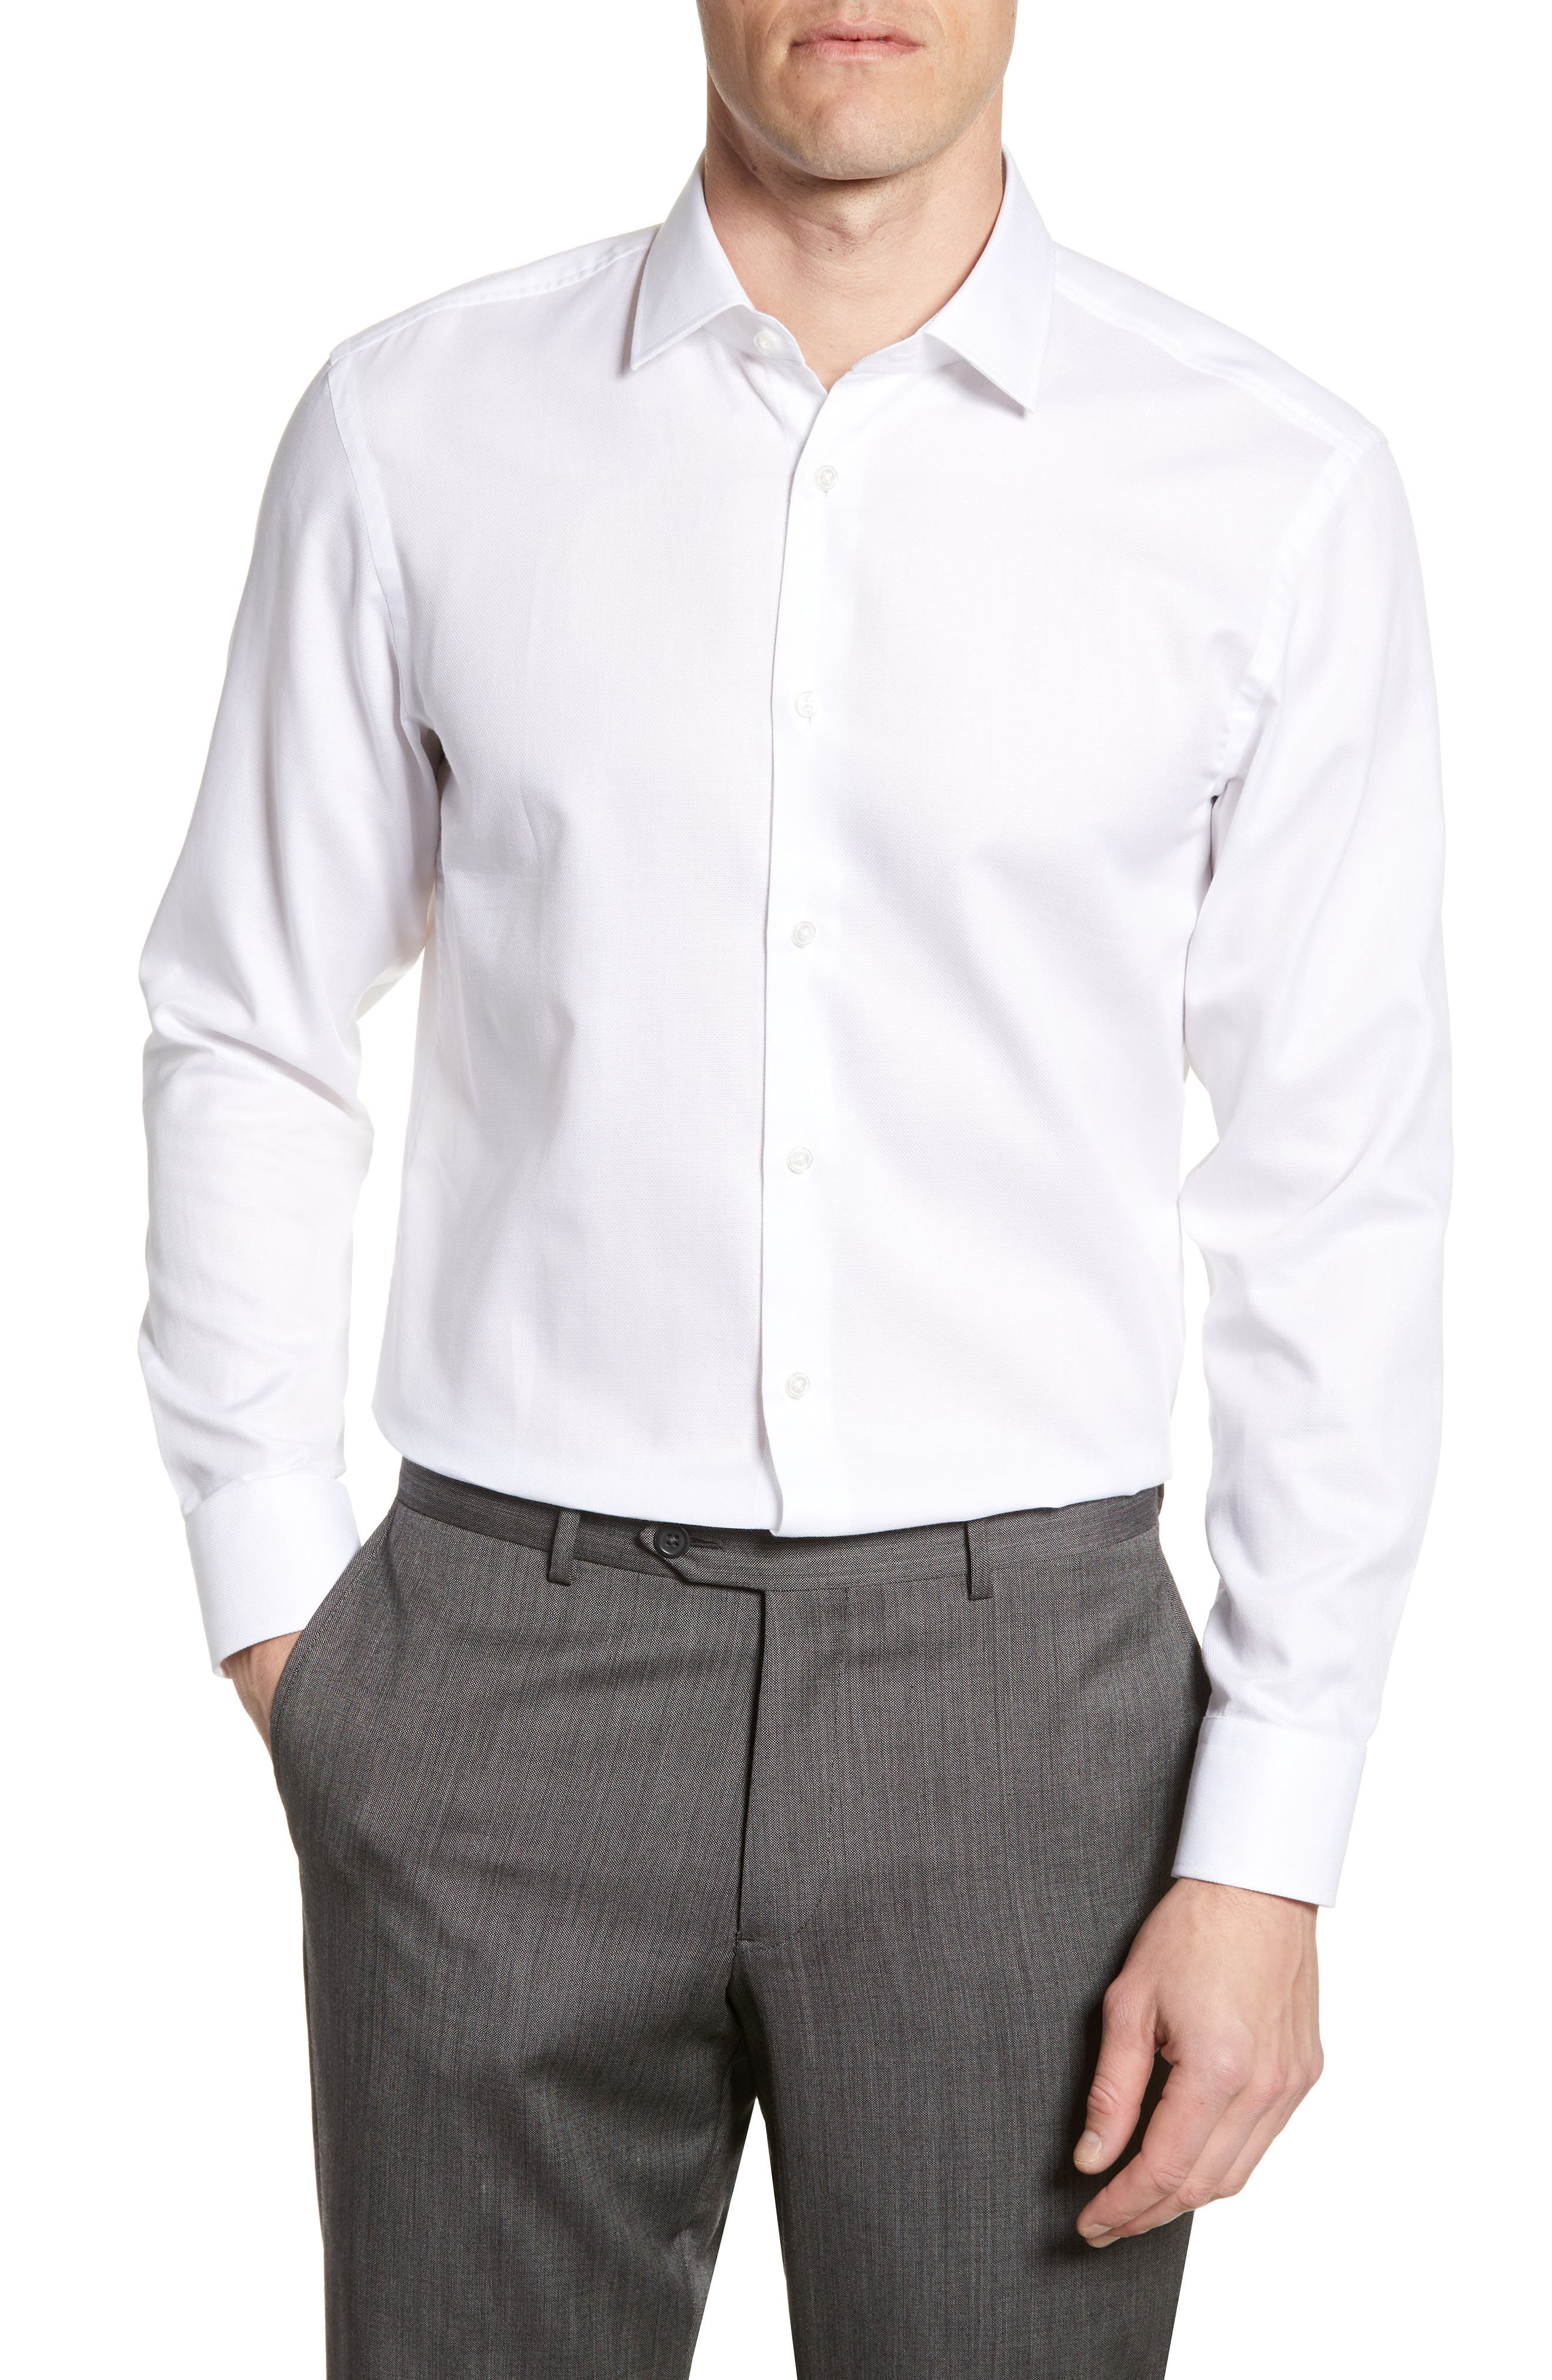 BOSS, Marley Sharp Fit Dress Shirt, Main thumbnail 1, color, WHITE